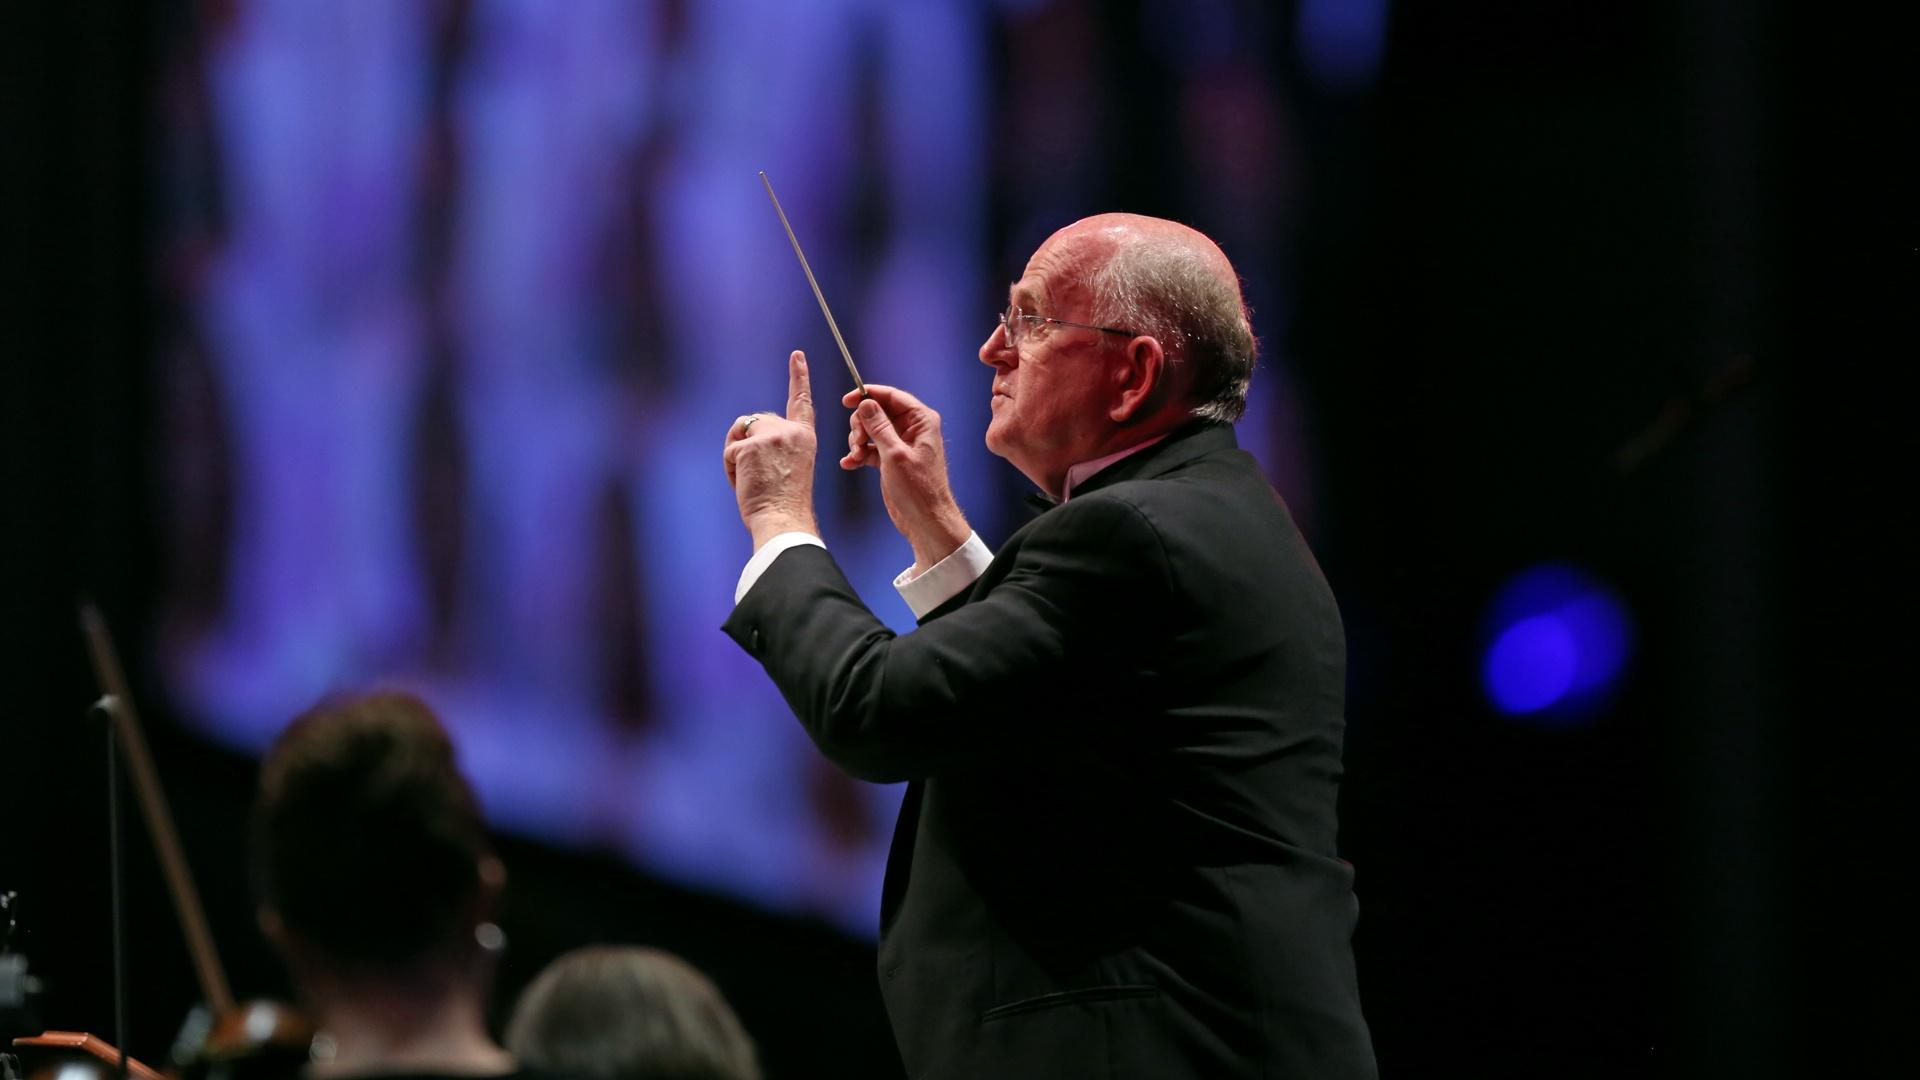 Dr. Mack Wilberg of The Tabernacle Choir conducts musicians.